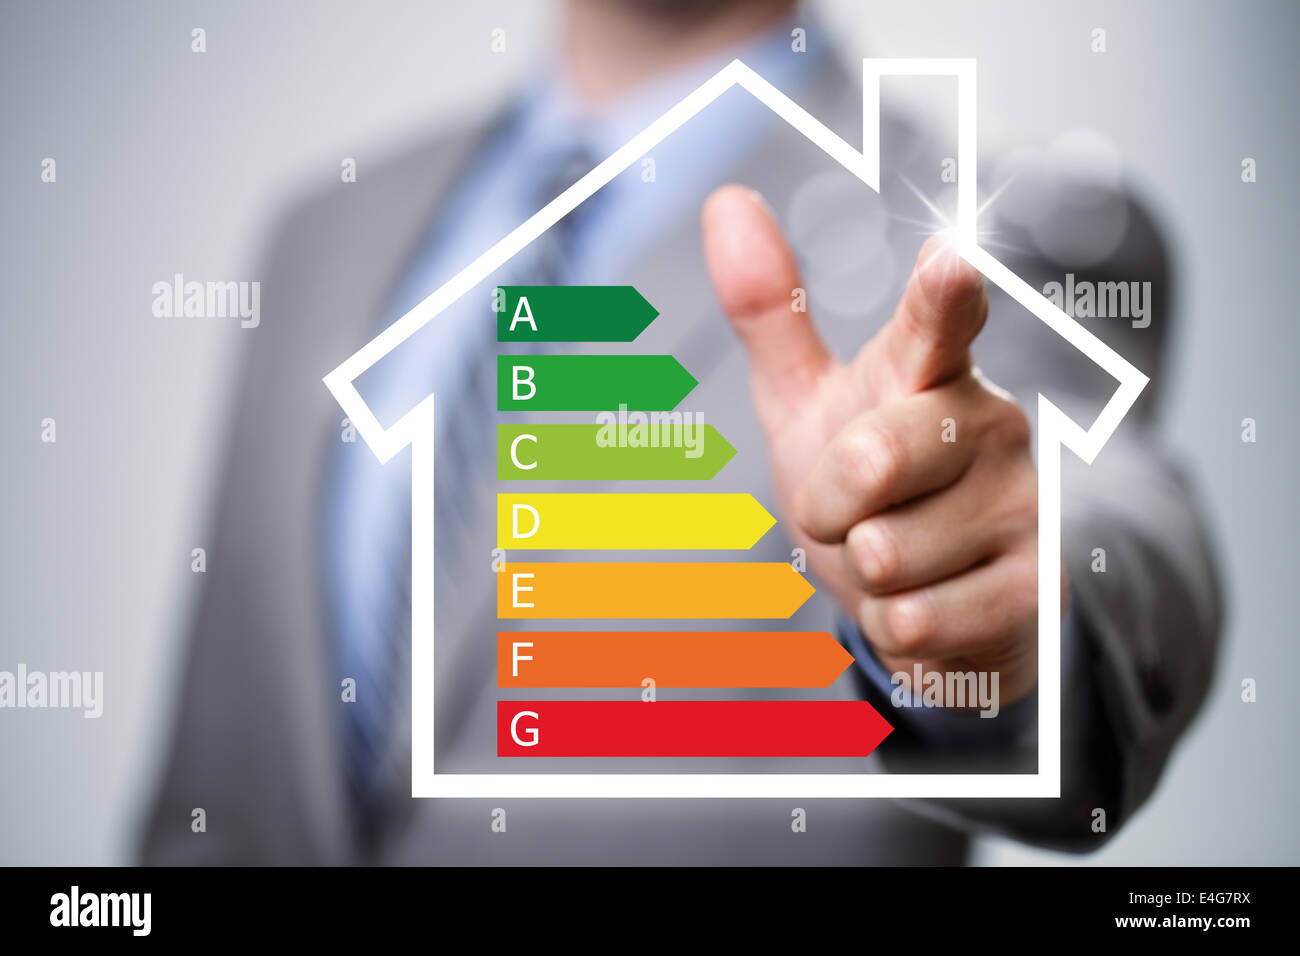 Efficienza energetica in casa Immagini Stock